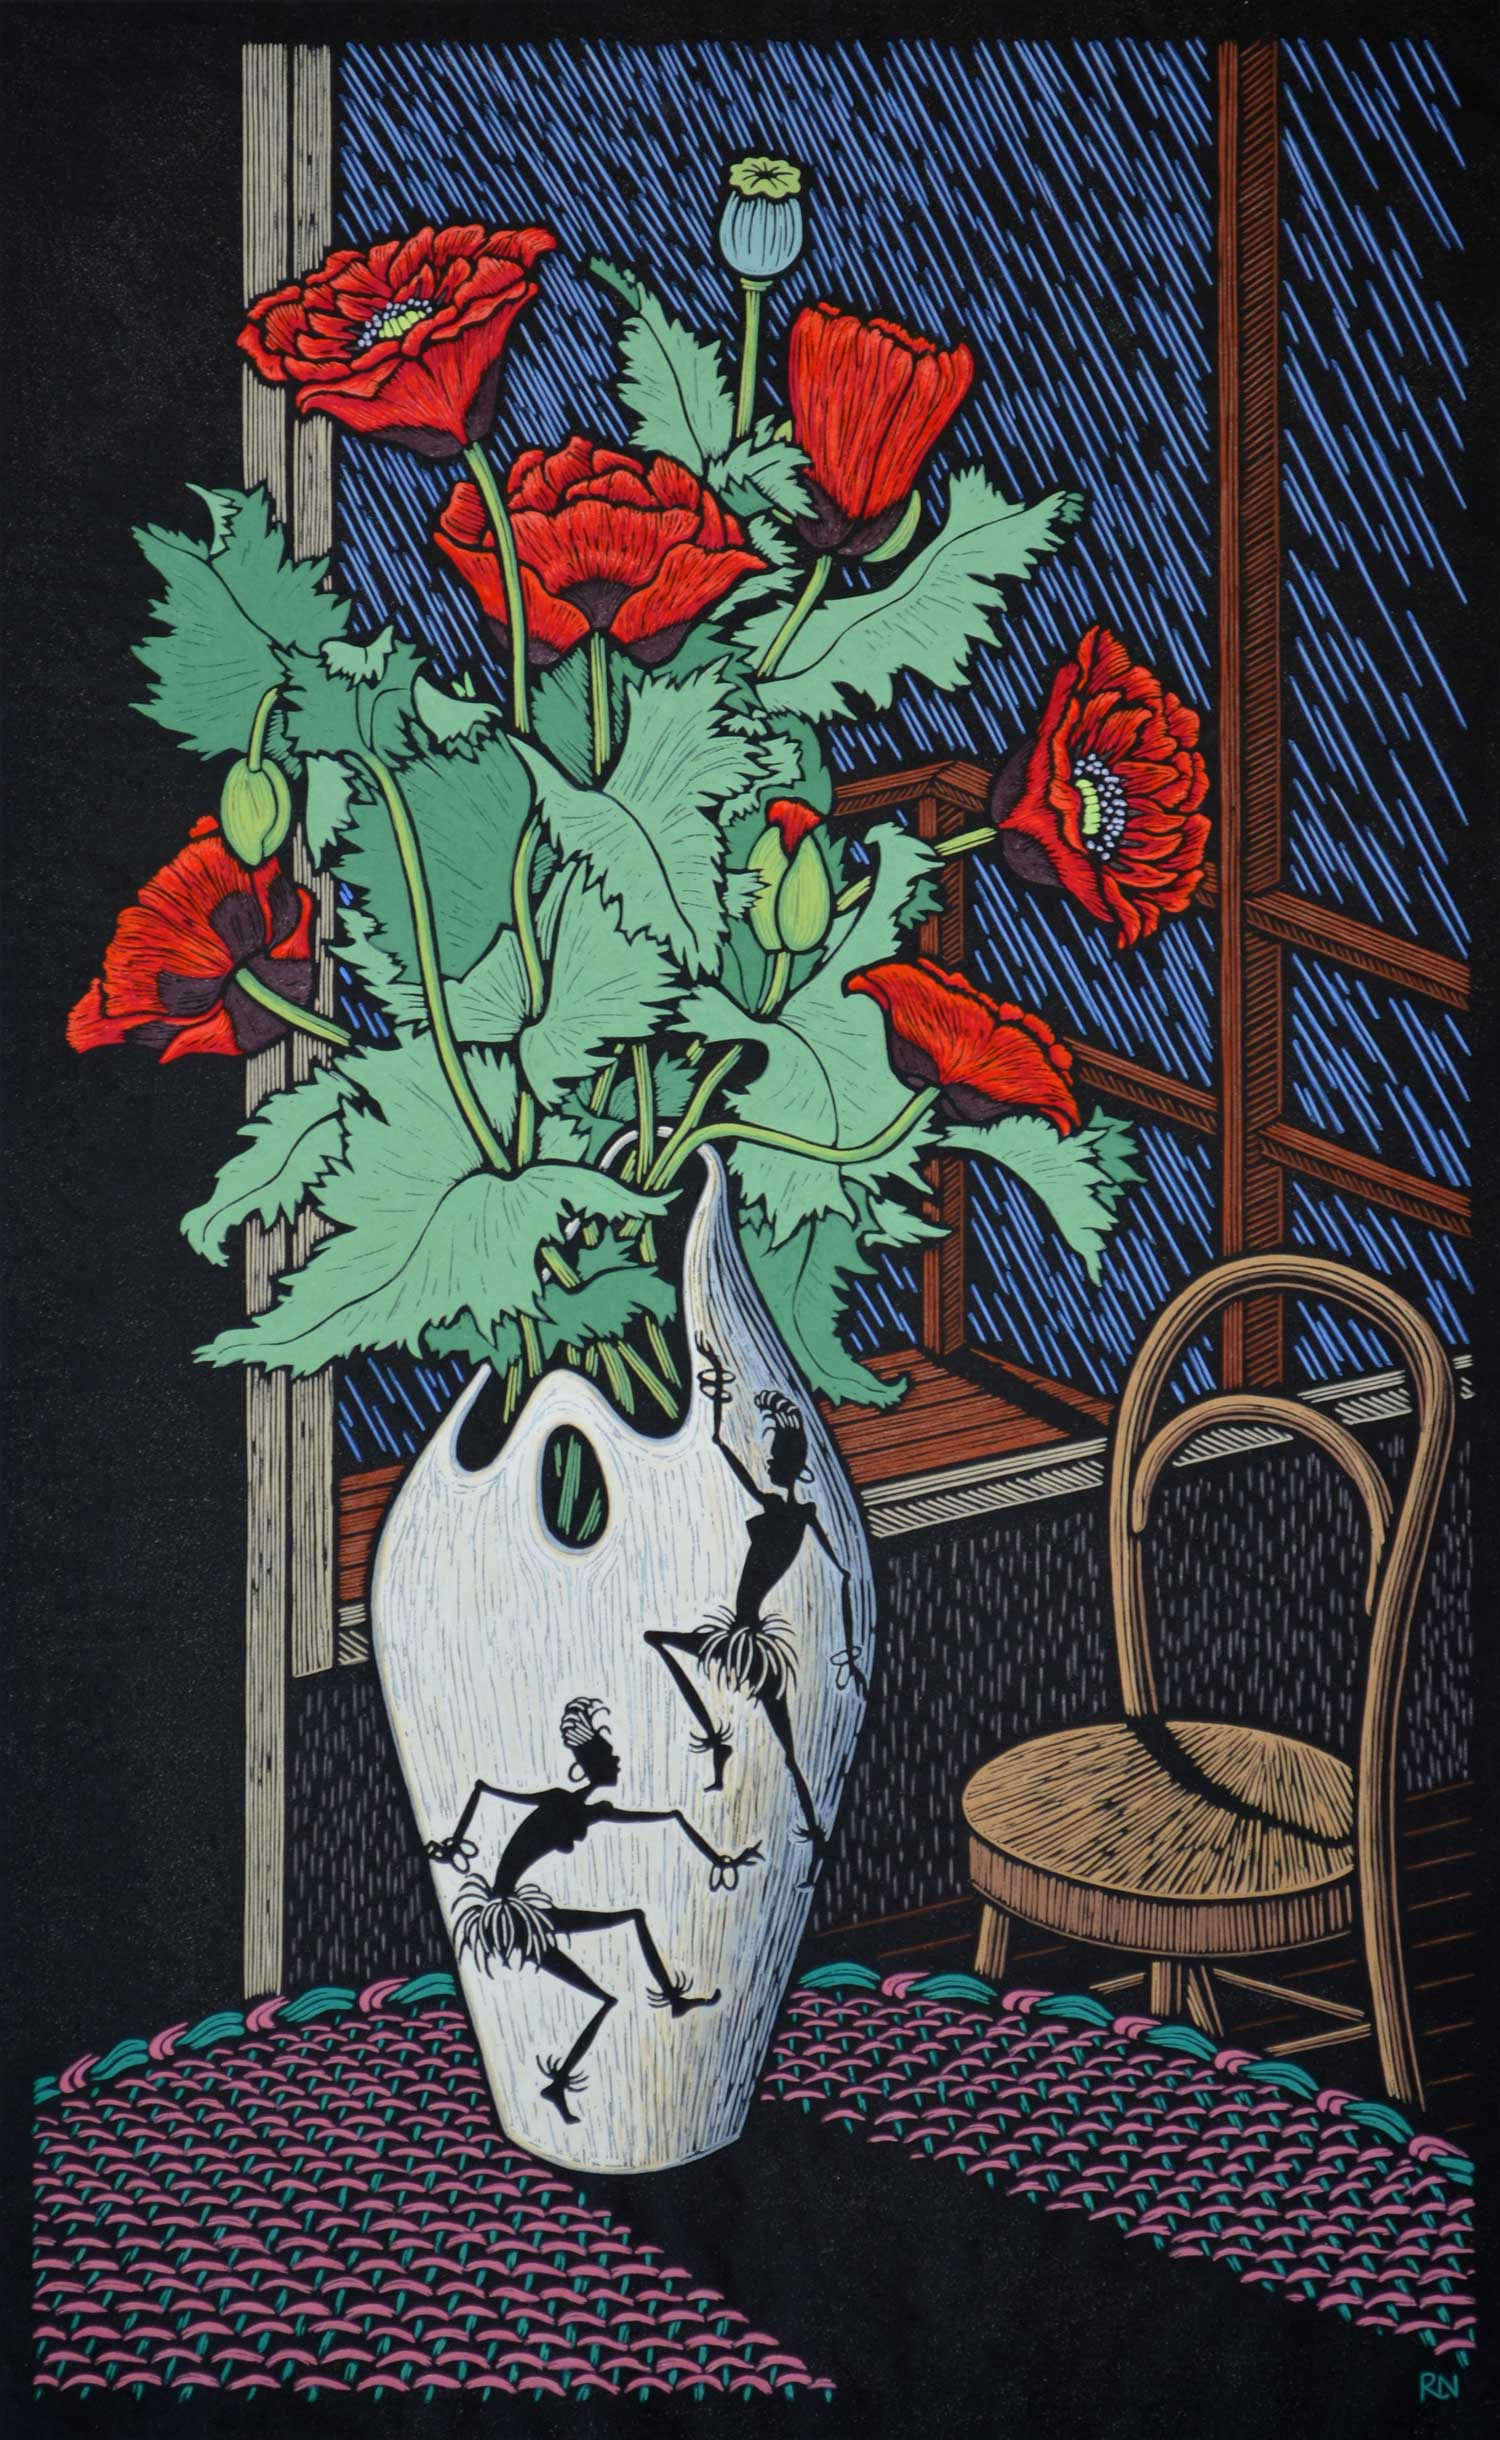 POPPY STILL LIFE  77 X 47.5 CM EDITION OF 50  HAND COLOURED LINOCUT ON HANDMADE JAPANESE PAPER  $1,700